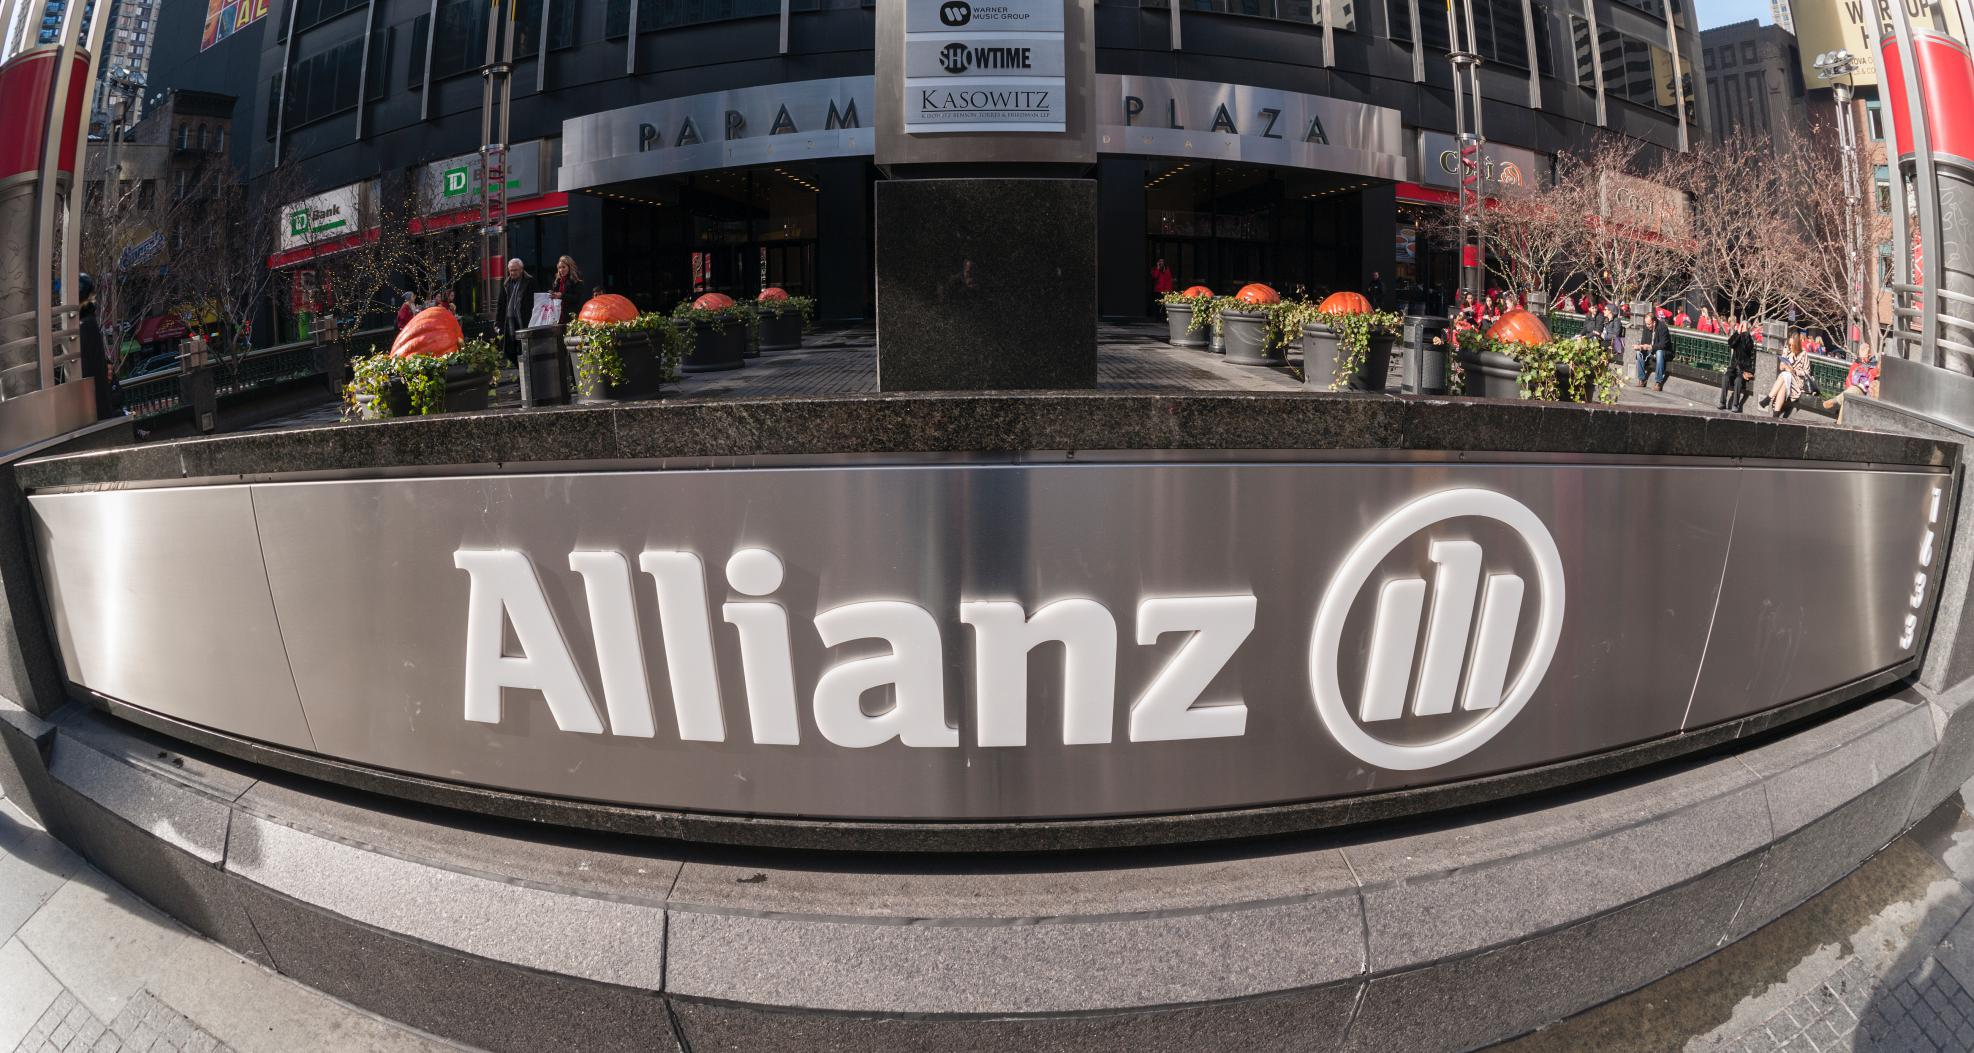 techcrunch.com - Jon Russell - German insurance giant Allianz increases its VC fund to $1.1 billion